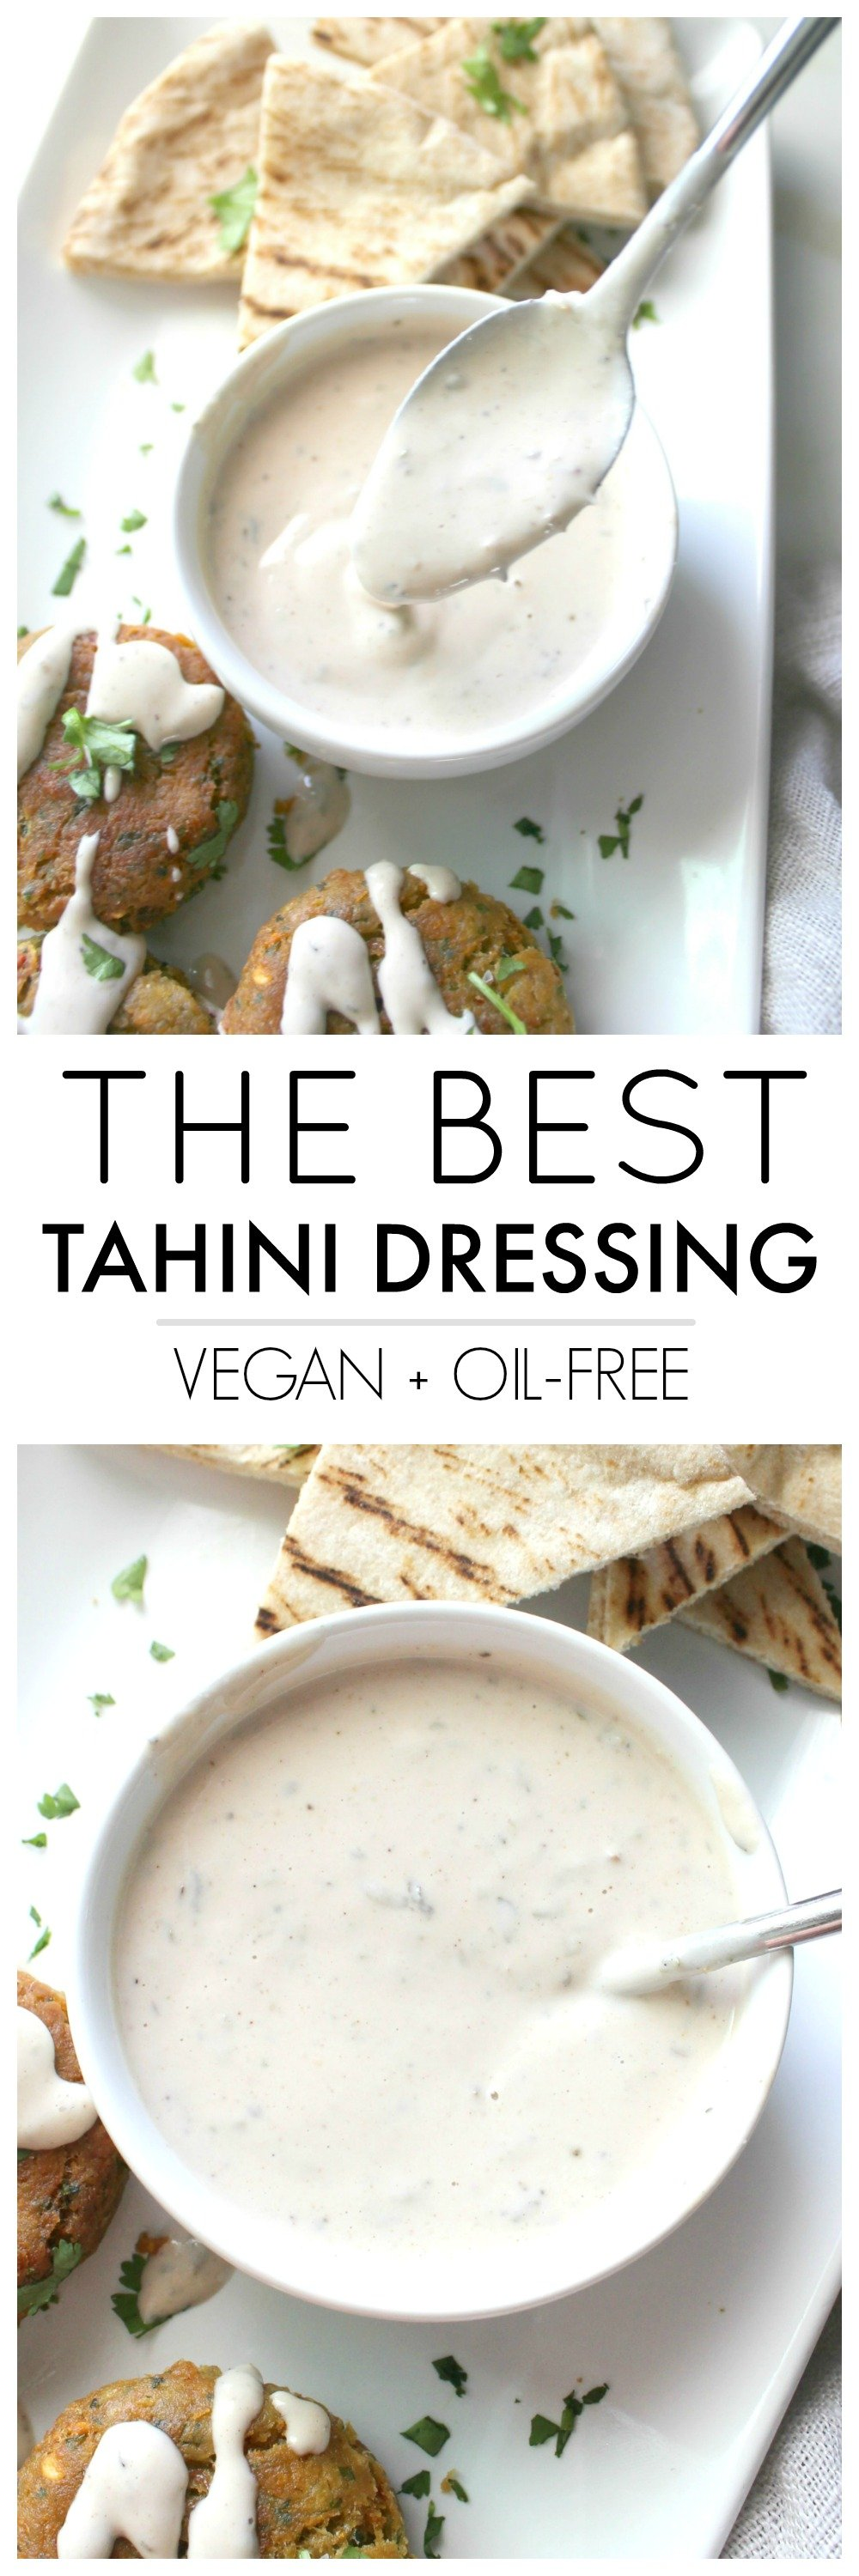 With just 6 ingredients and 60 seconds, you will haveThe Best Tahini Dressing ready to go. Serve this over salads, buddha bowls or roasted potatoes. 100% vegan and no blending required | ThisSavoryVegan.com #vegan #thissavoryvegan #healthyrecipes